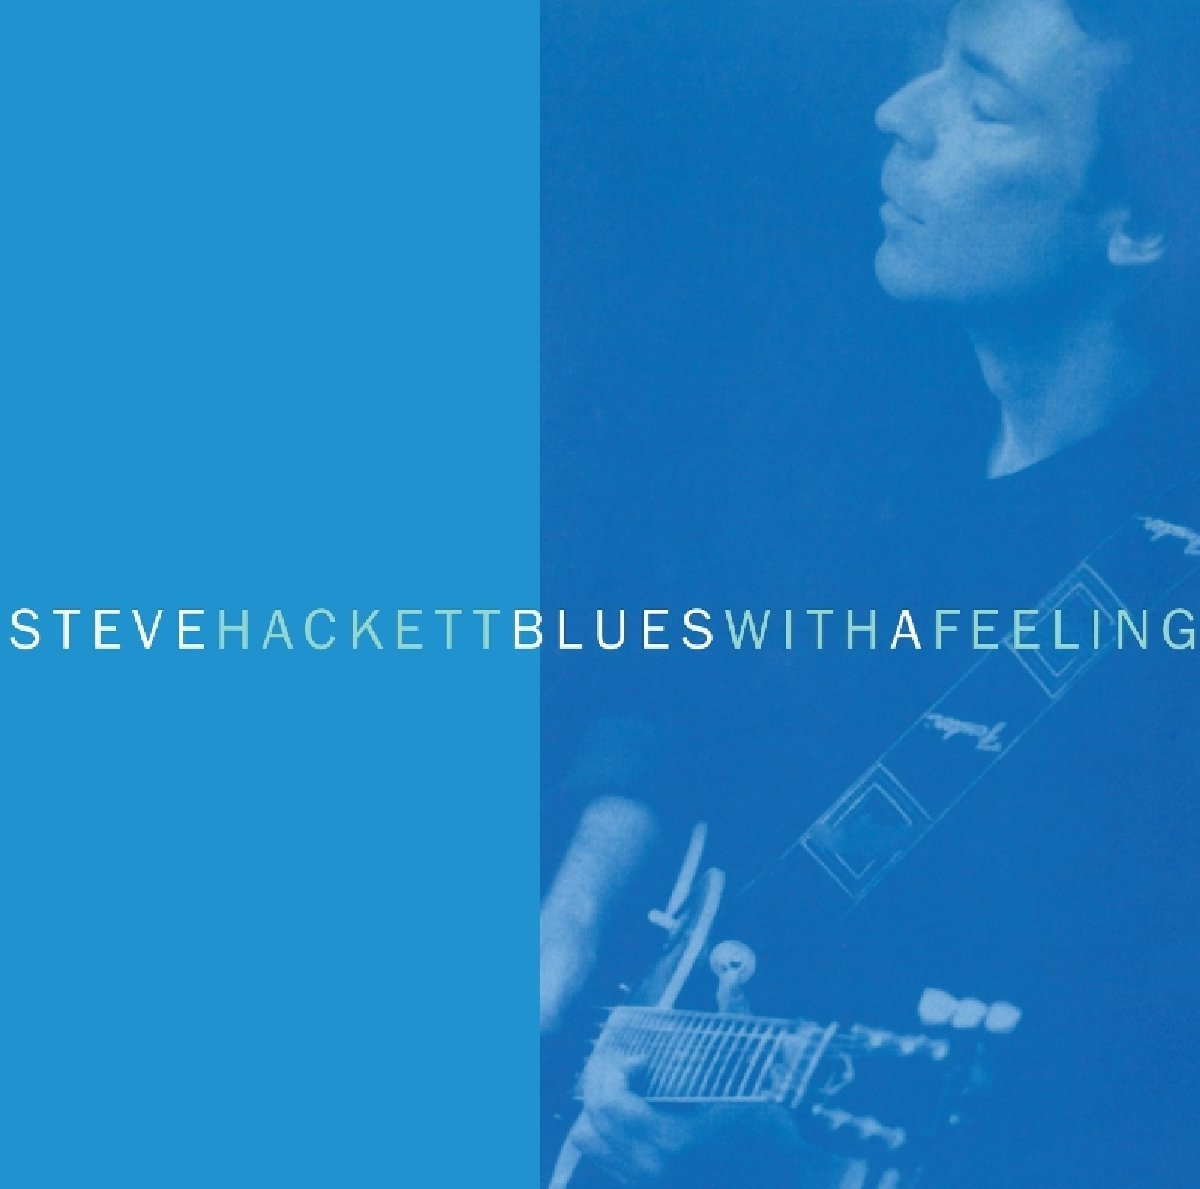 Blues With A Feeling